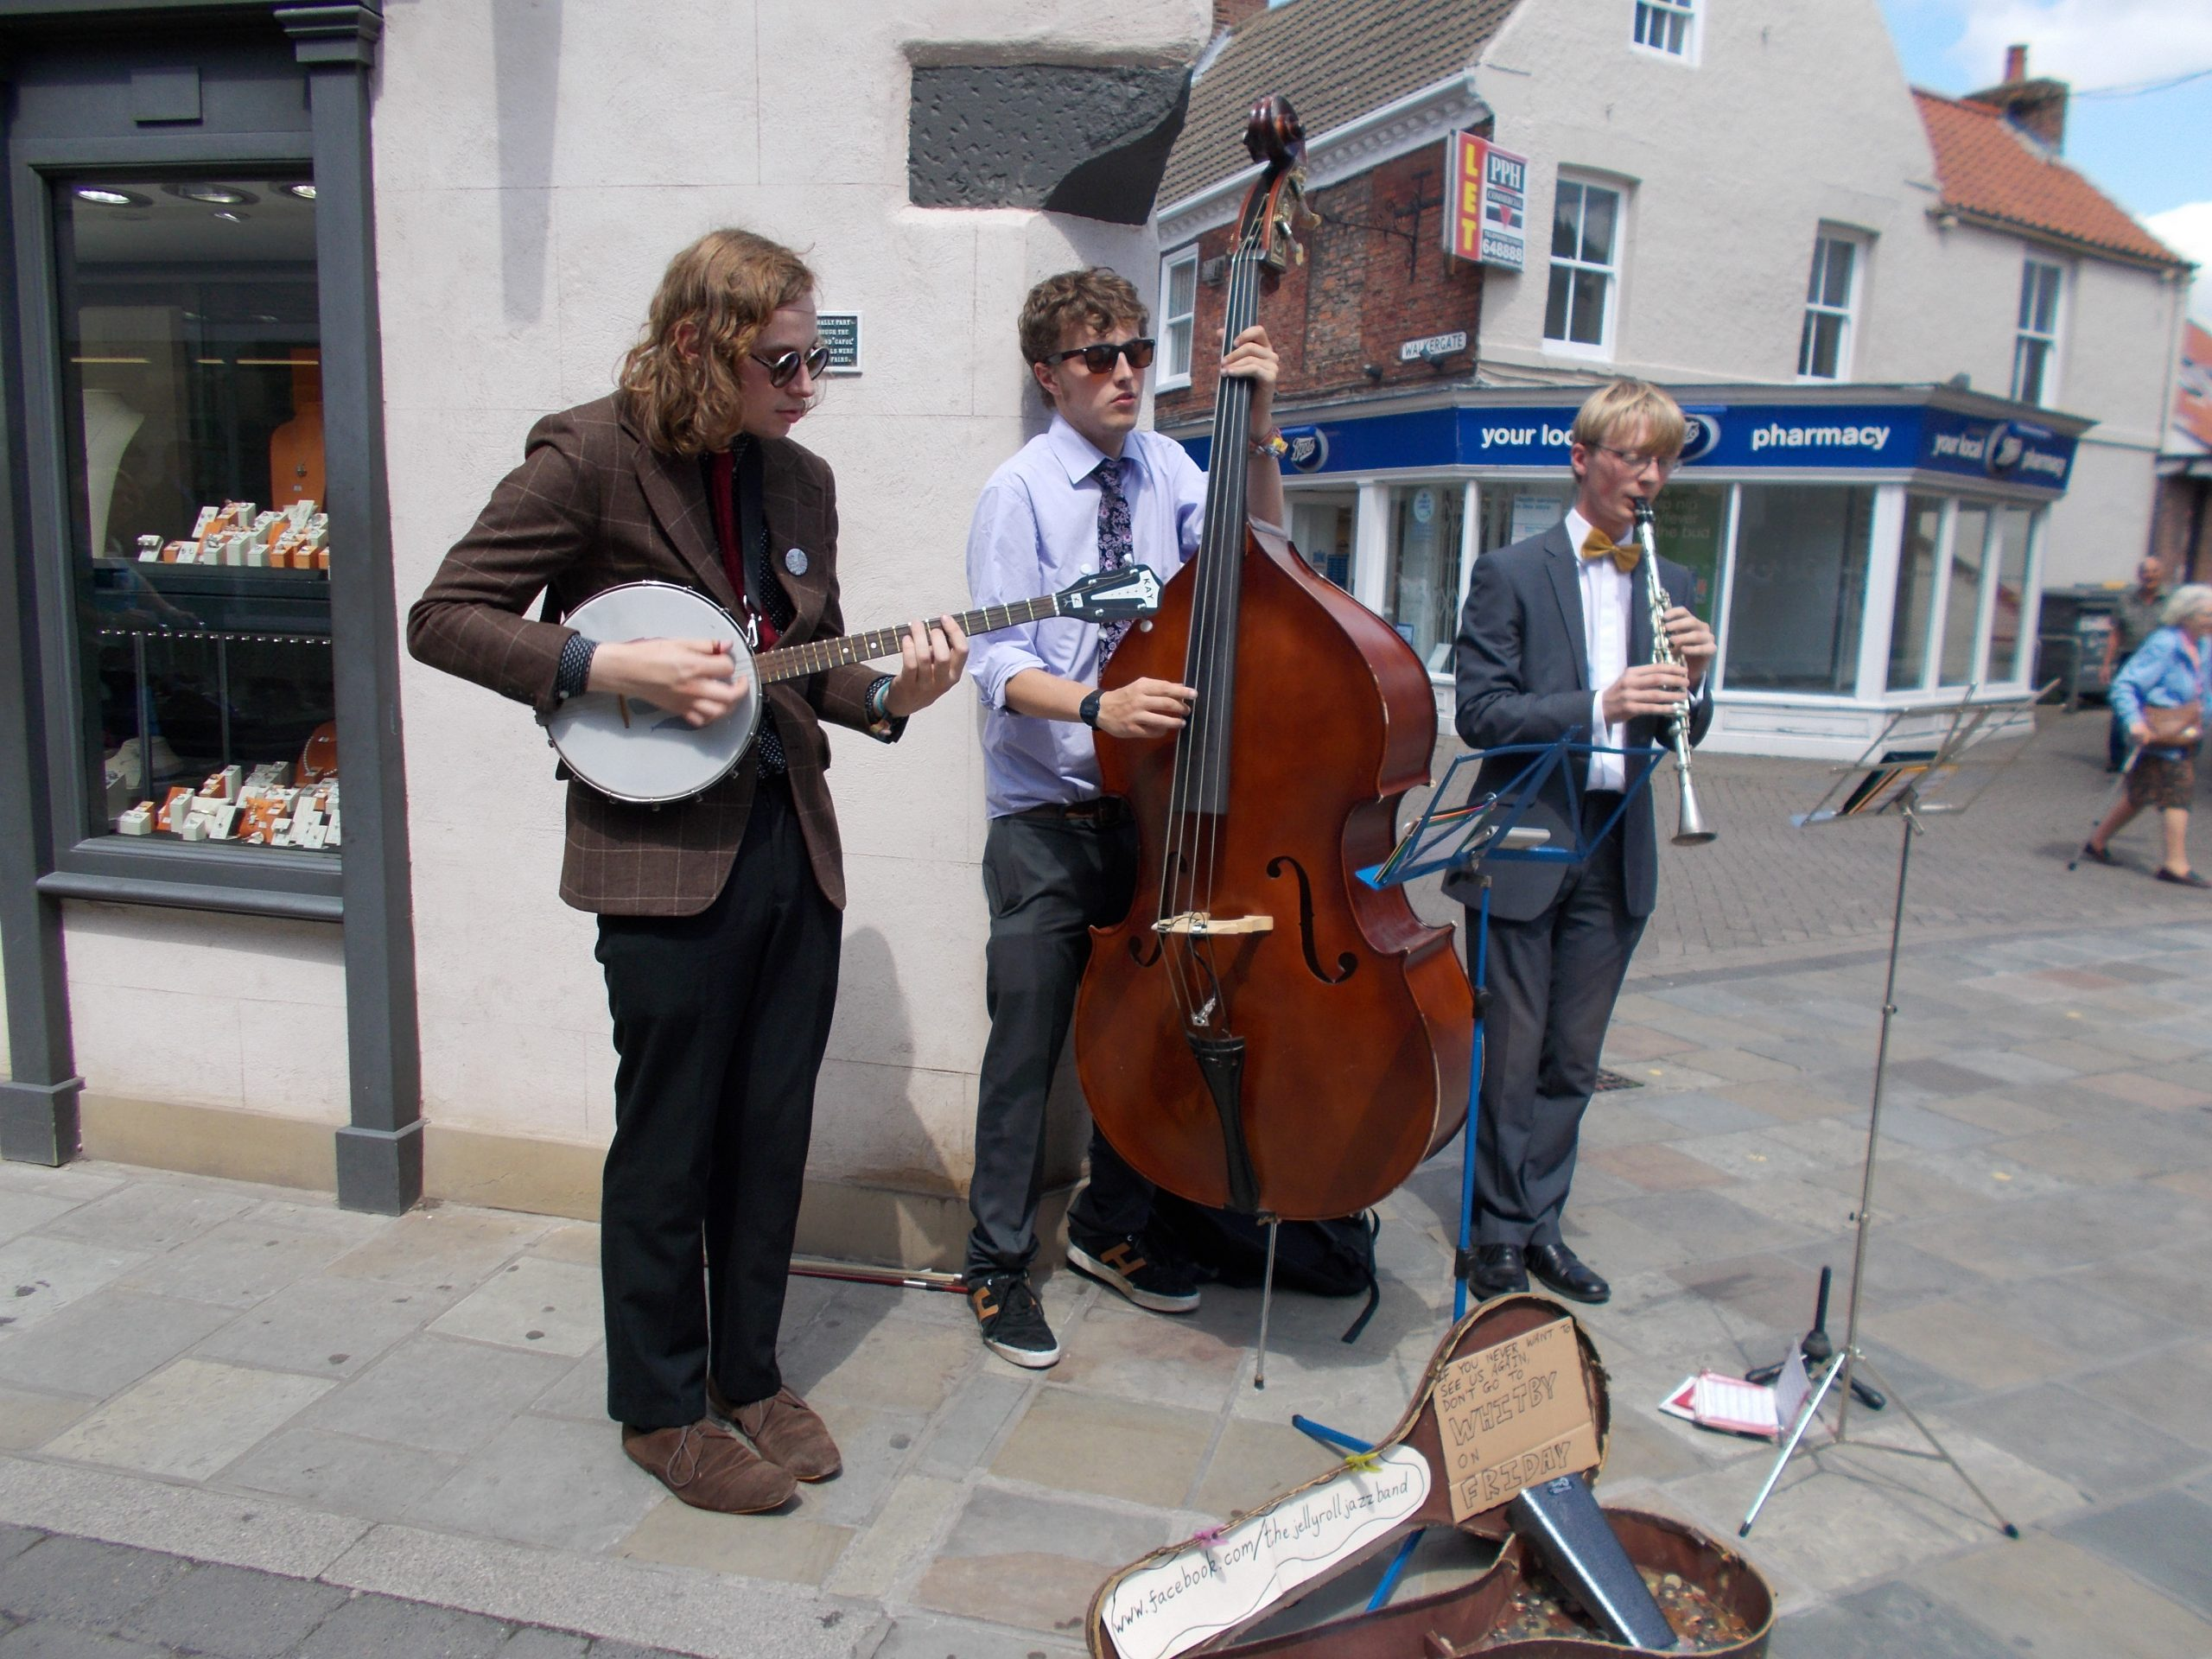 The Jelly Roll Jazz Band busking in Beverley, 2015